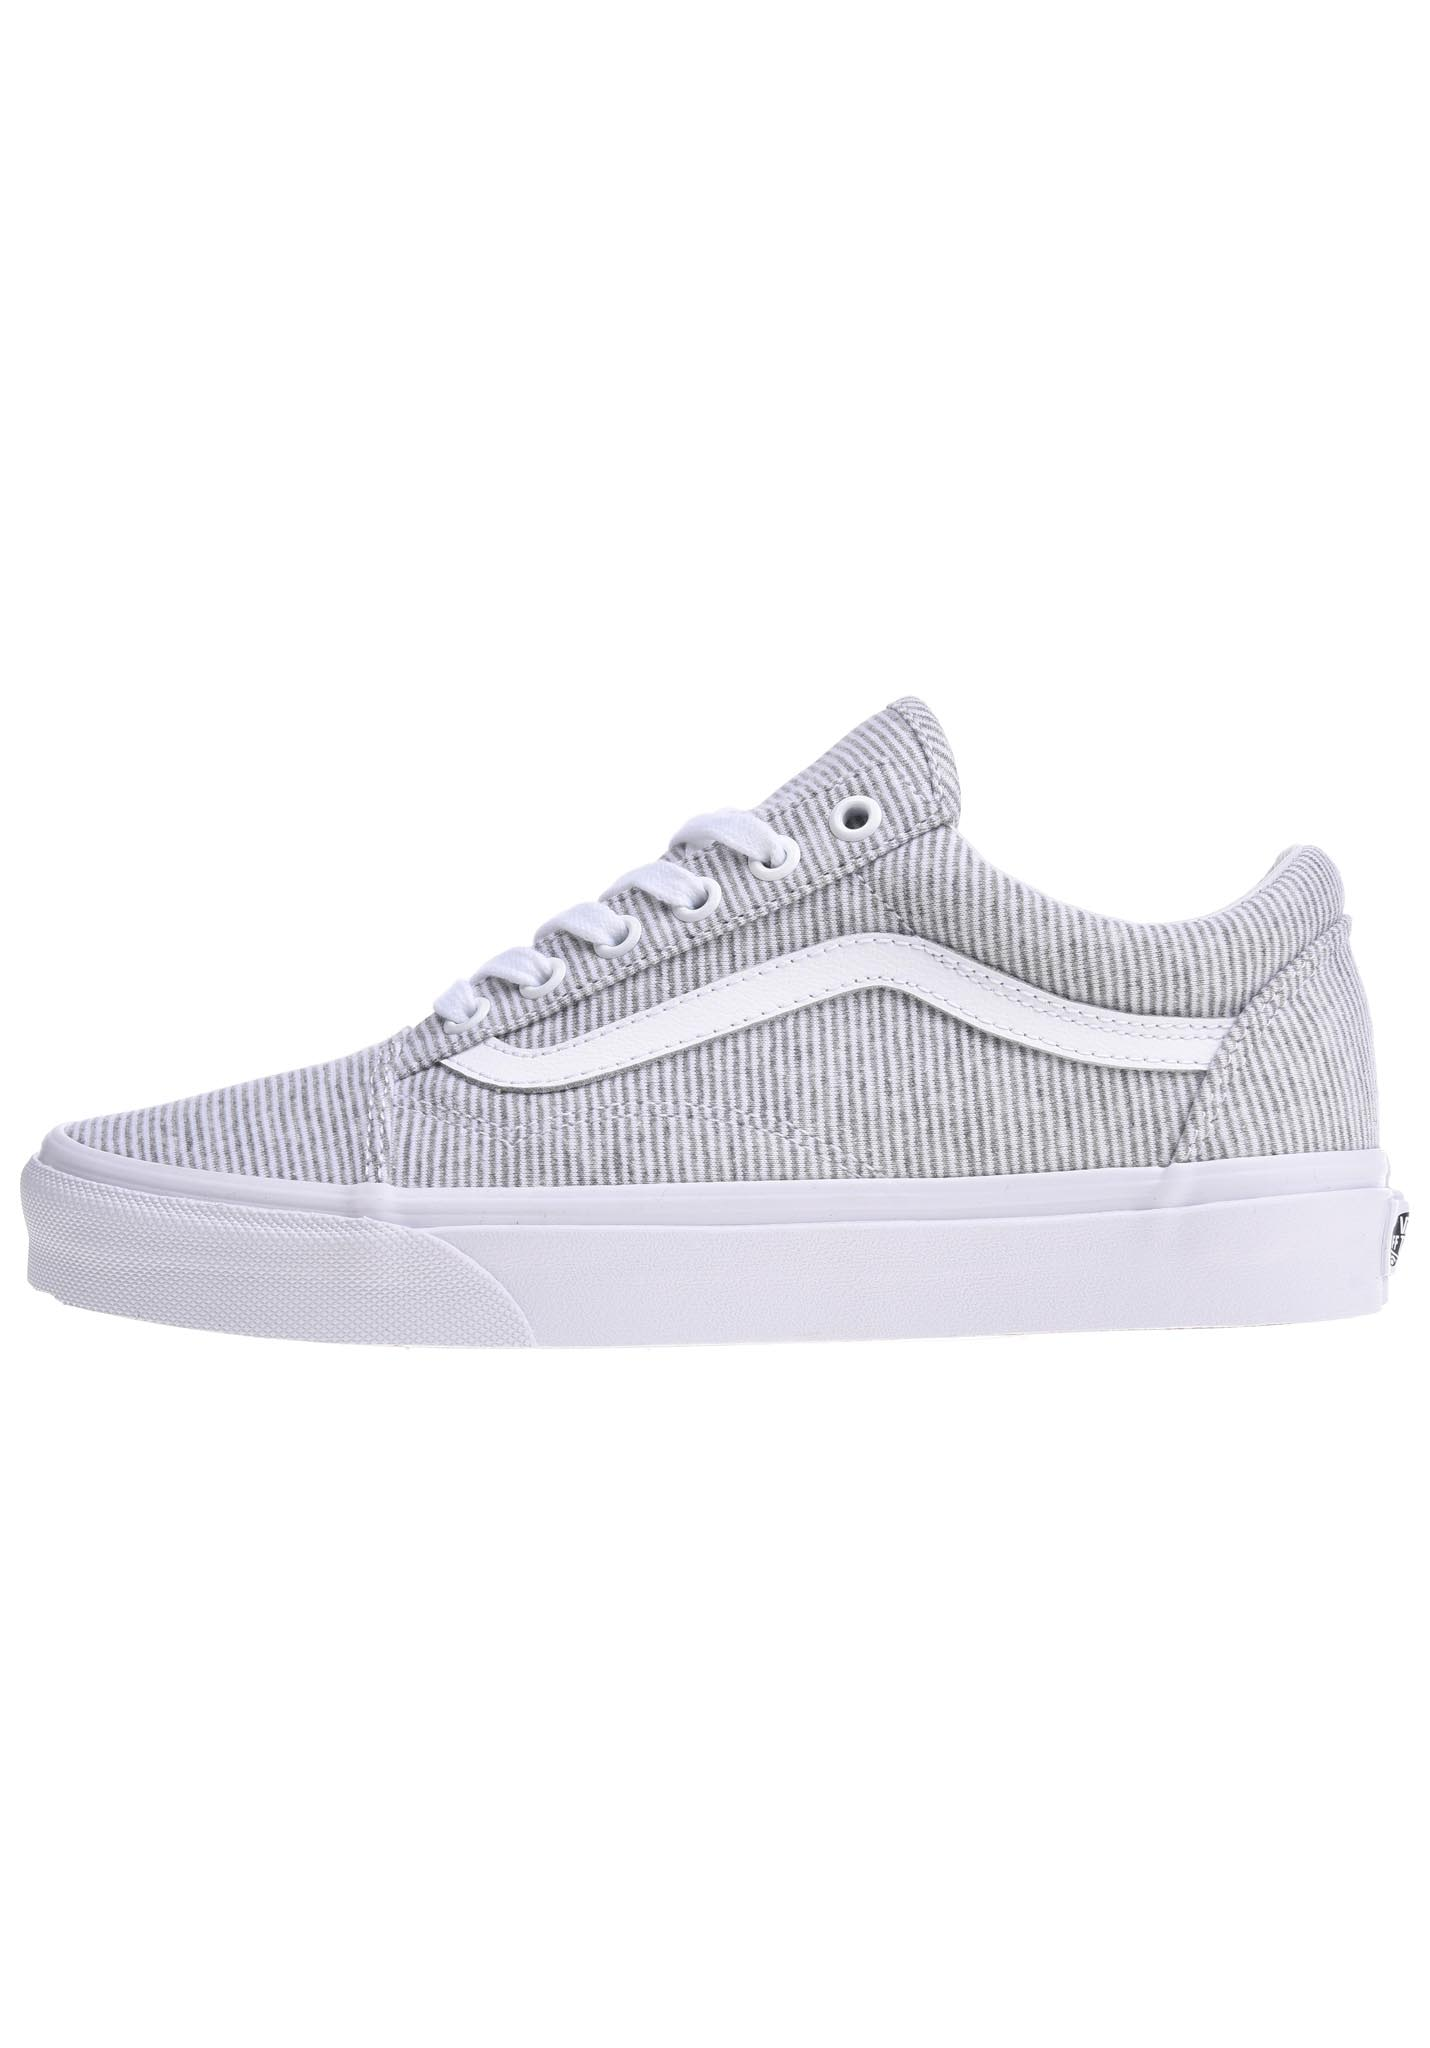 226604b0a8 VANS Old Skool - Sneaker für Damen - Grau - Planet Sports